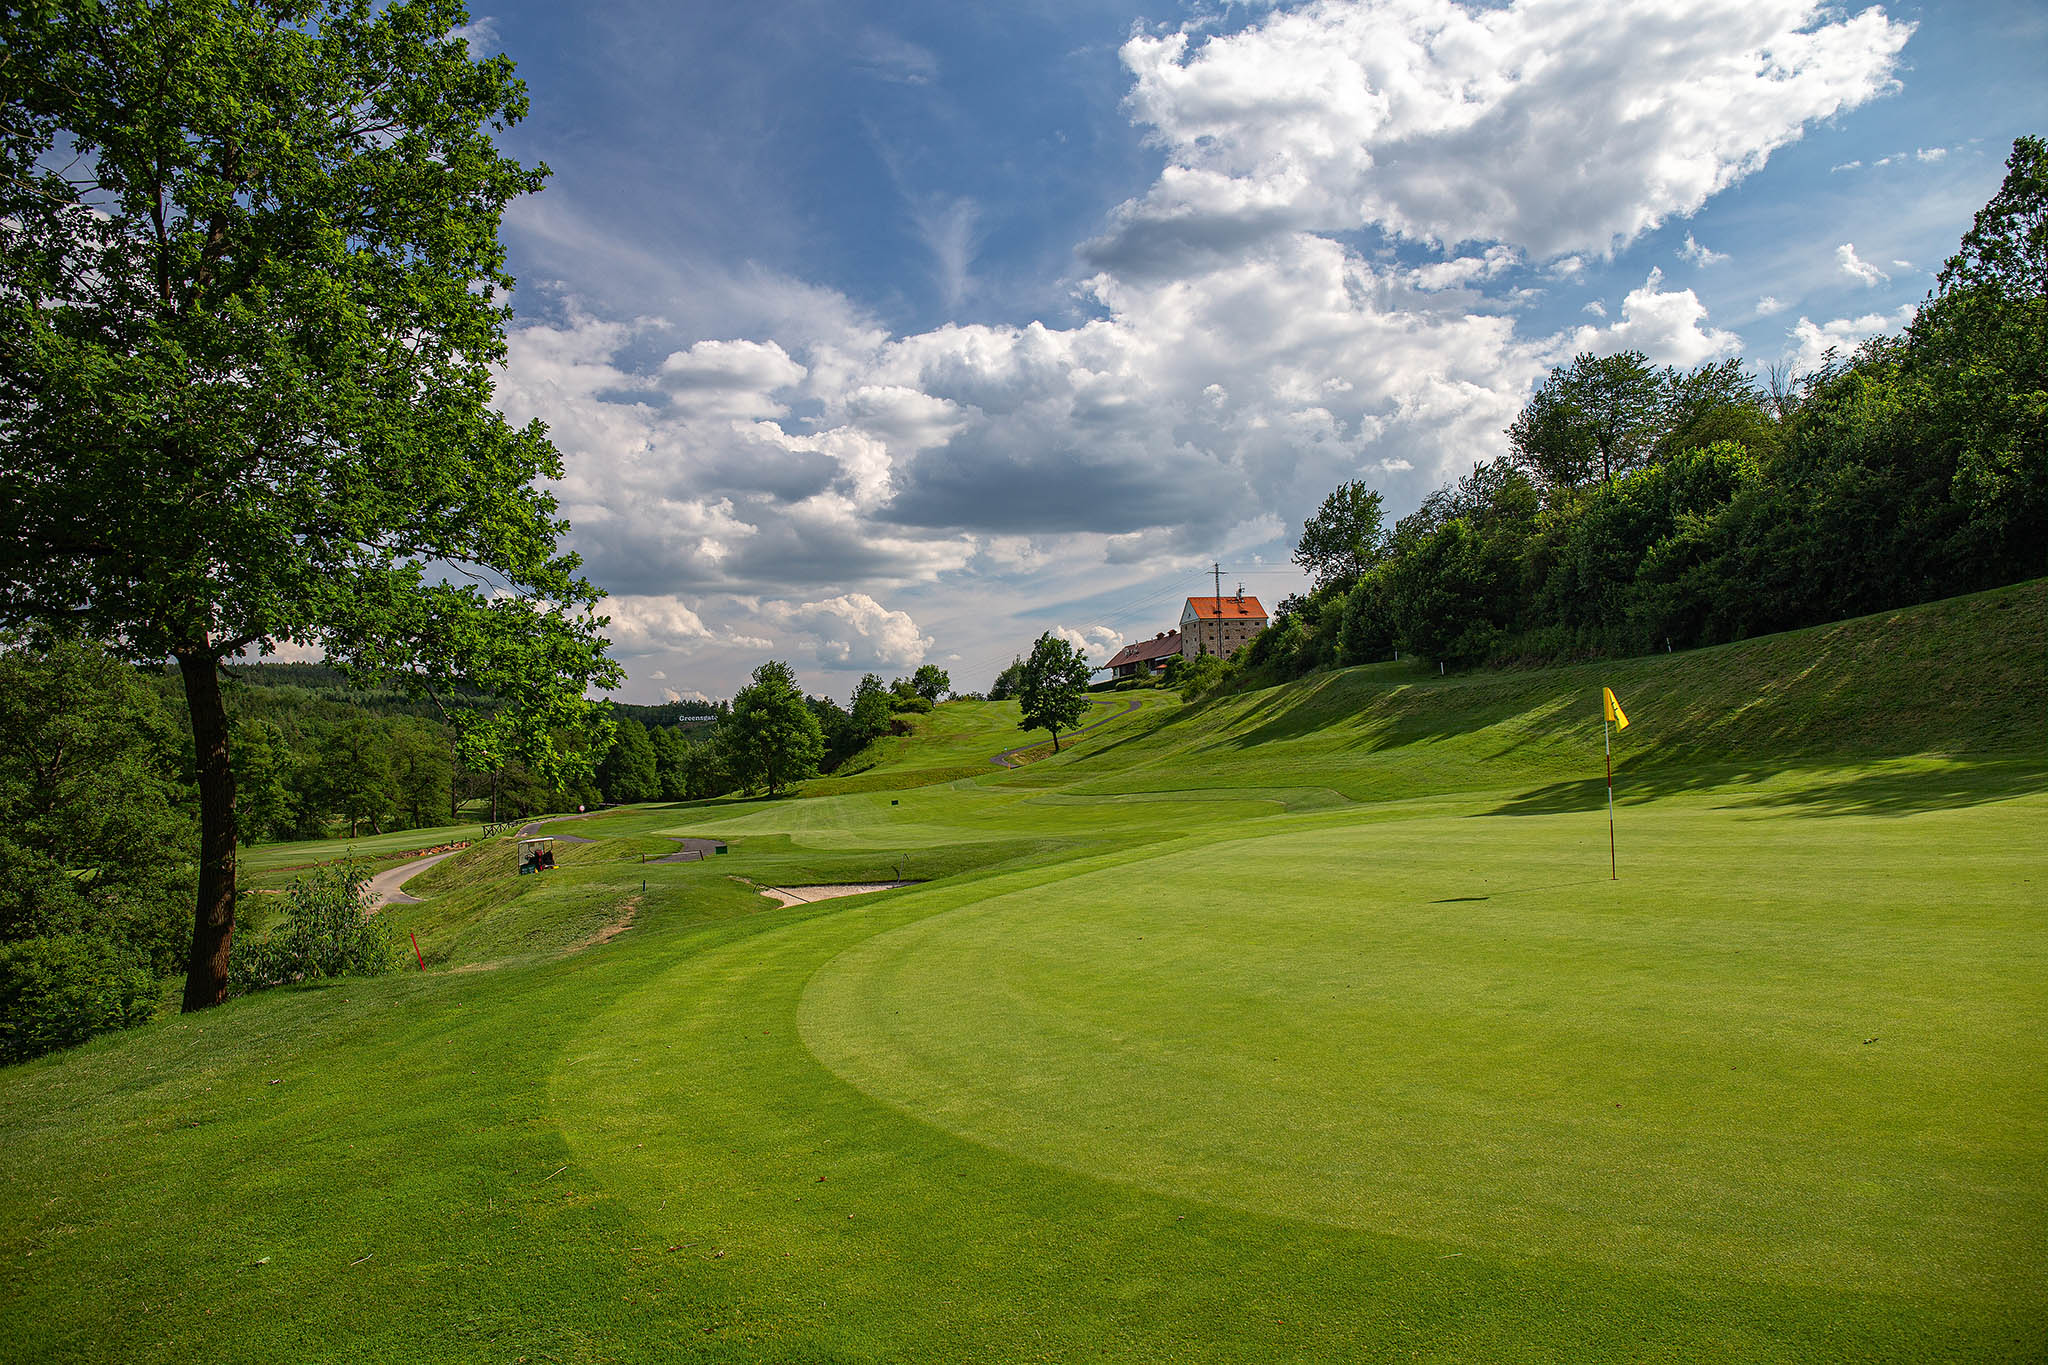 Greensgate Golf & Leisure Resort: 18 jamek, par 72, délka 6244 m, architekt Christoph Städler